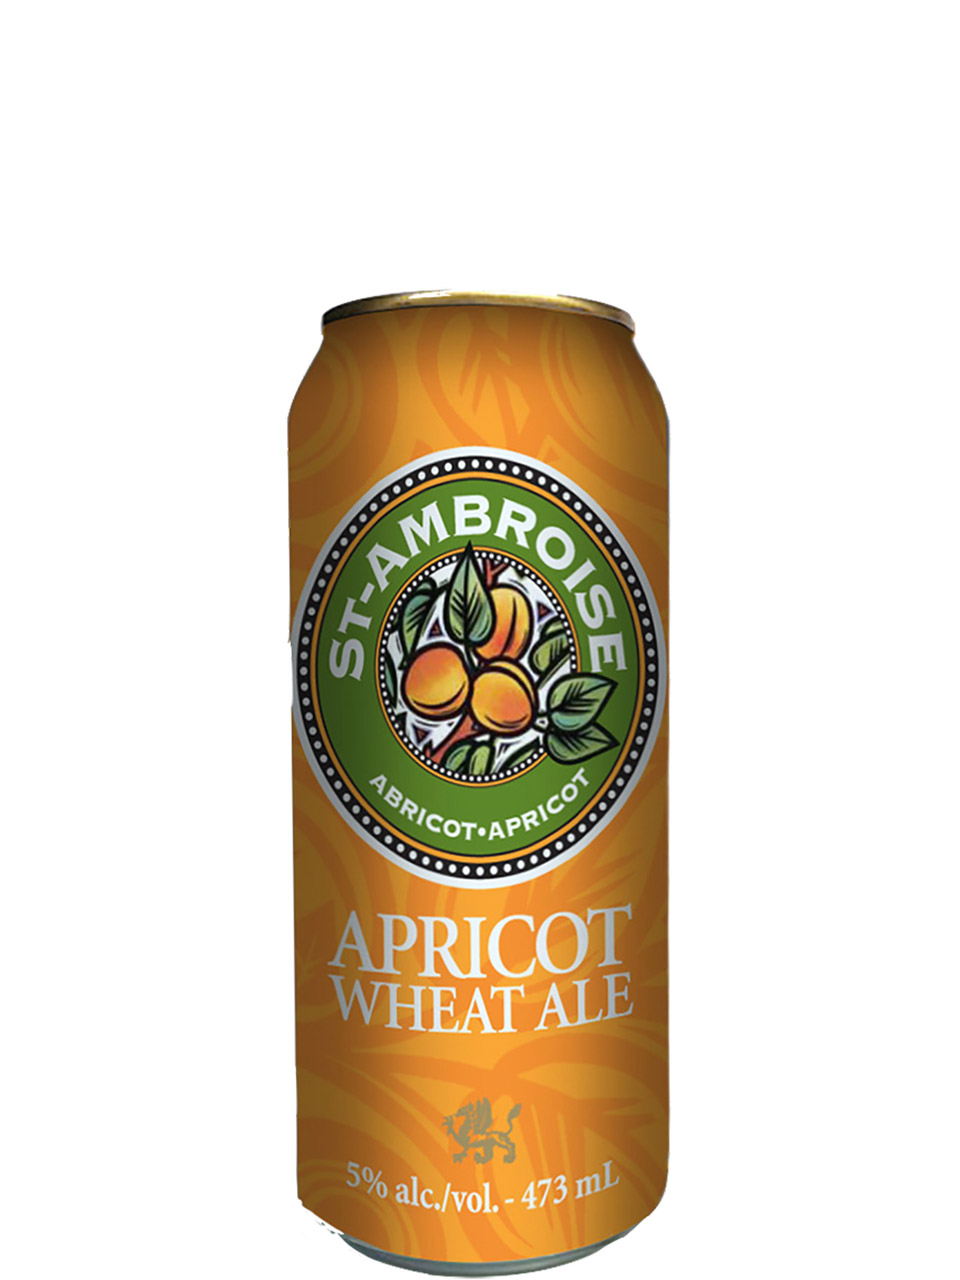 St.Ambroise Apricot Wheat Ale 473ml Can